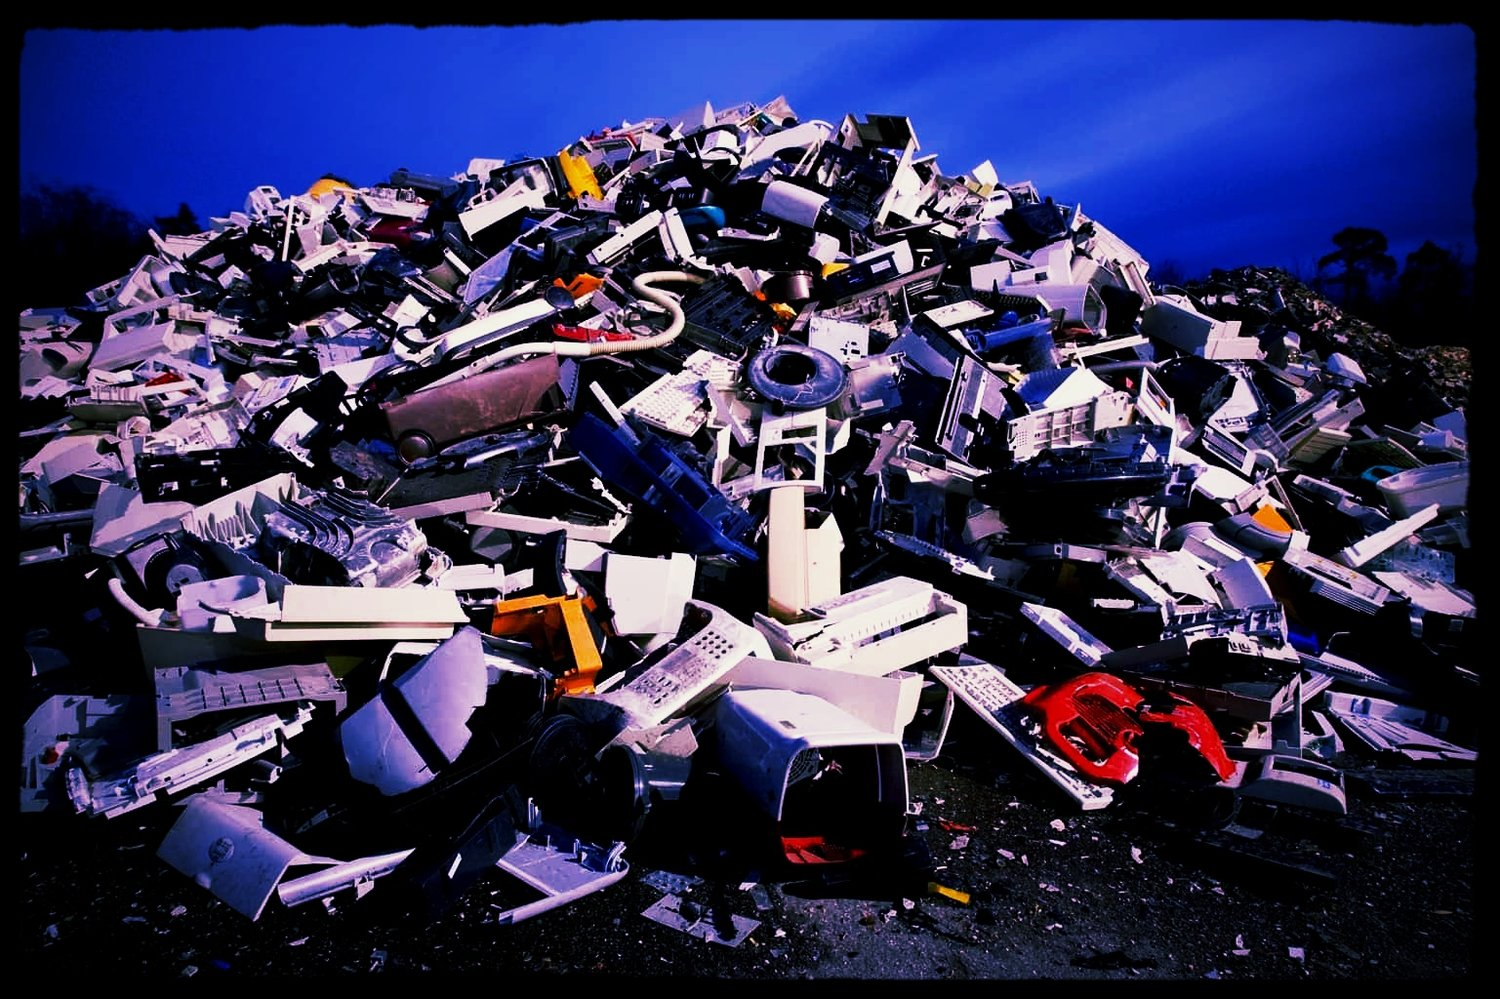 E waste background images - Green Cleanup Electronic Recycling